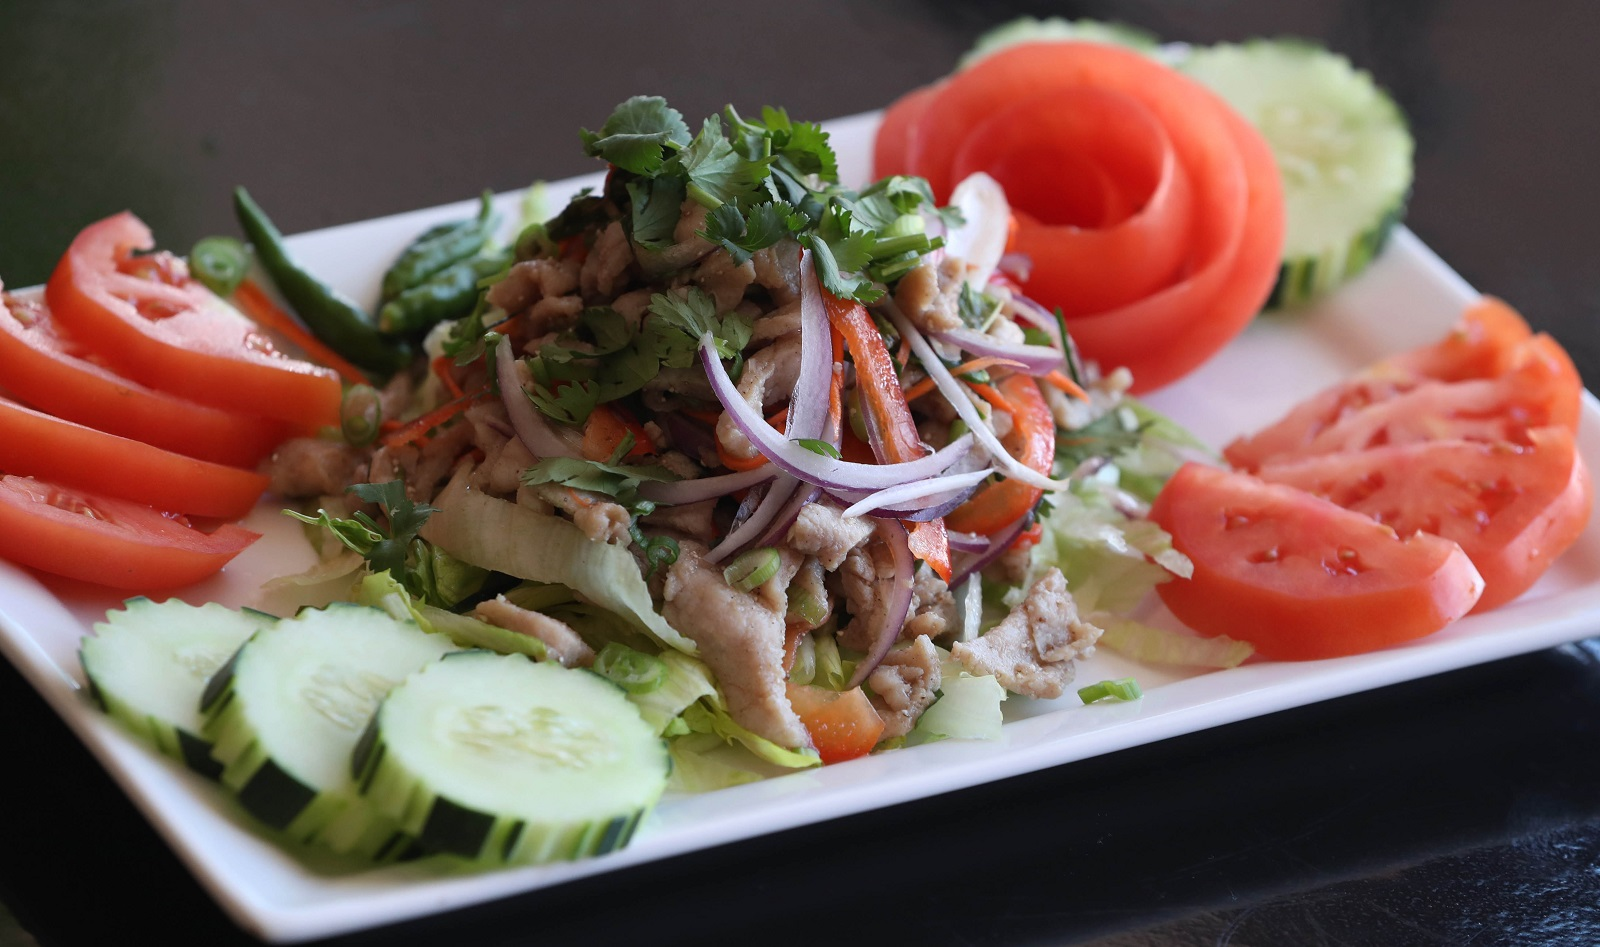 Taste of Siam's Lahb is a salad with a choice of chopped meat seasoned with Thai herbs, red onions, lemongrass, red peppers, mint leaves, cilantro, lime juice and smoked jasmine rice. (Sharon Cantillon/Buffalo News)